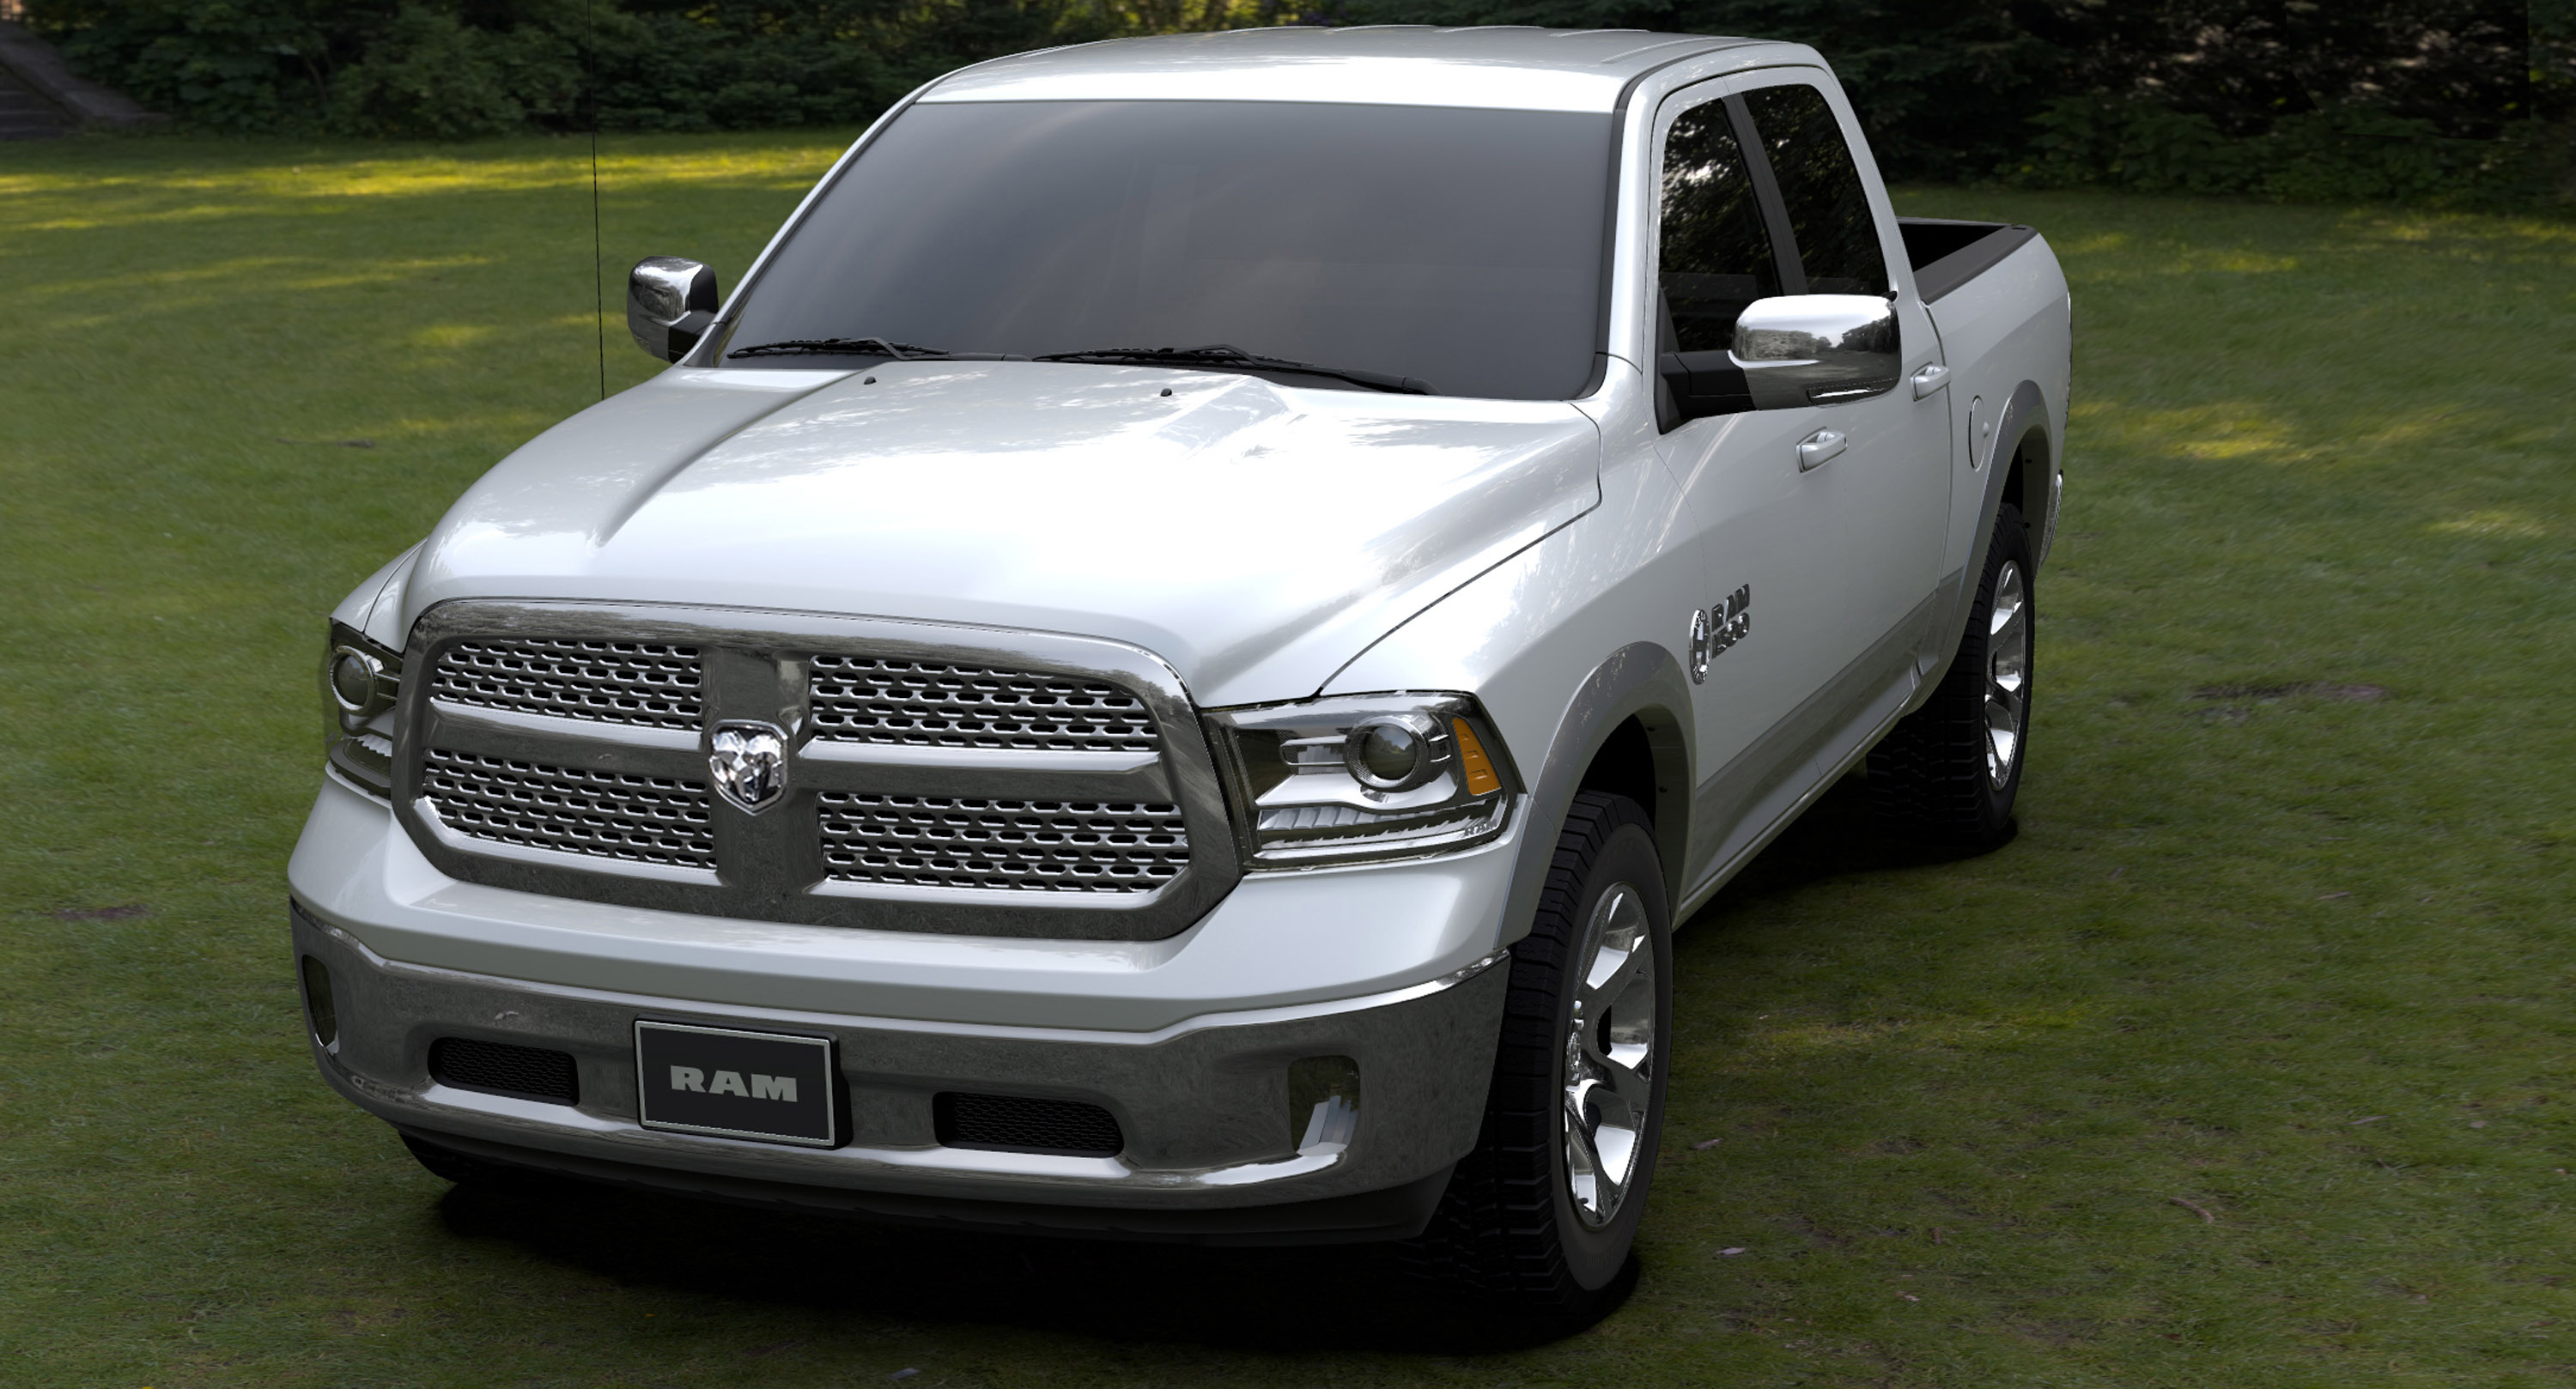 2015 ram 1500 texas ranger concept truck hd pictures. Black Bedroom Furniture Sets. Home Design Ideas